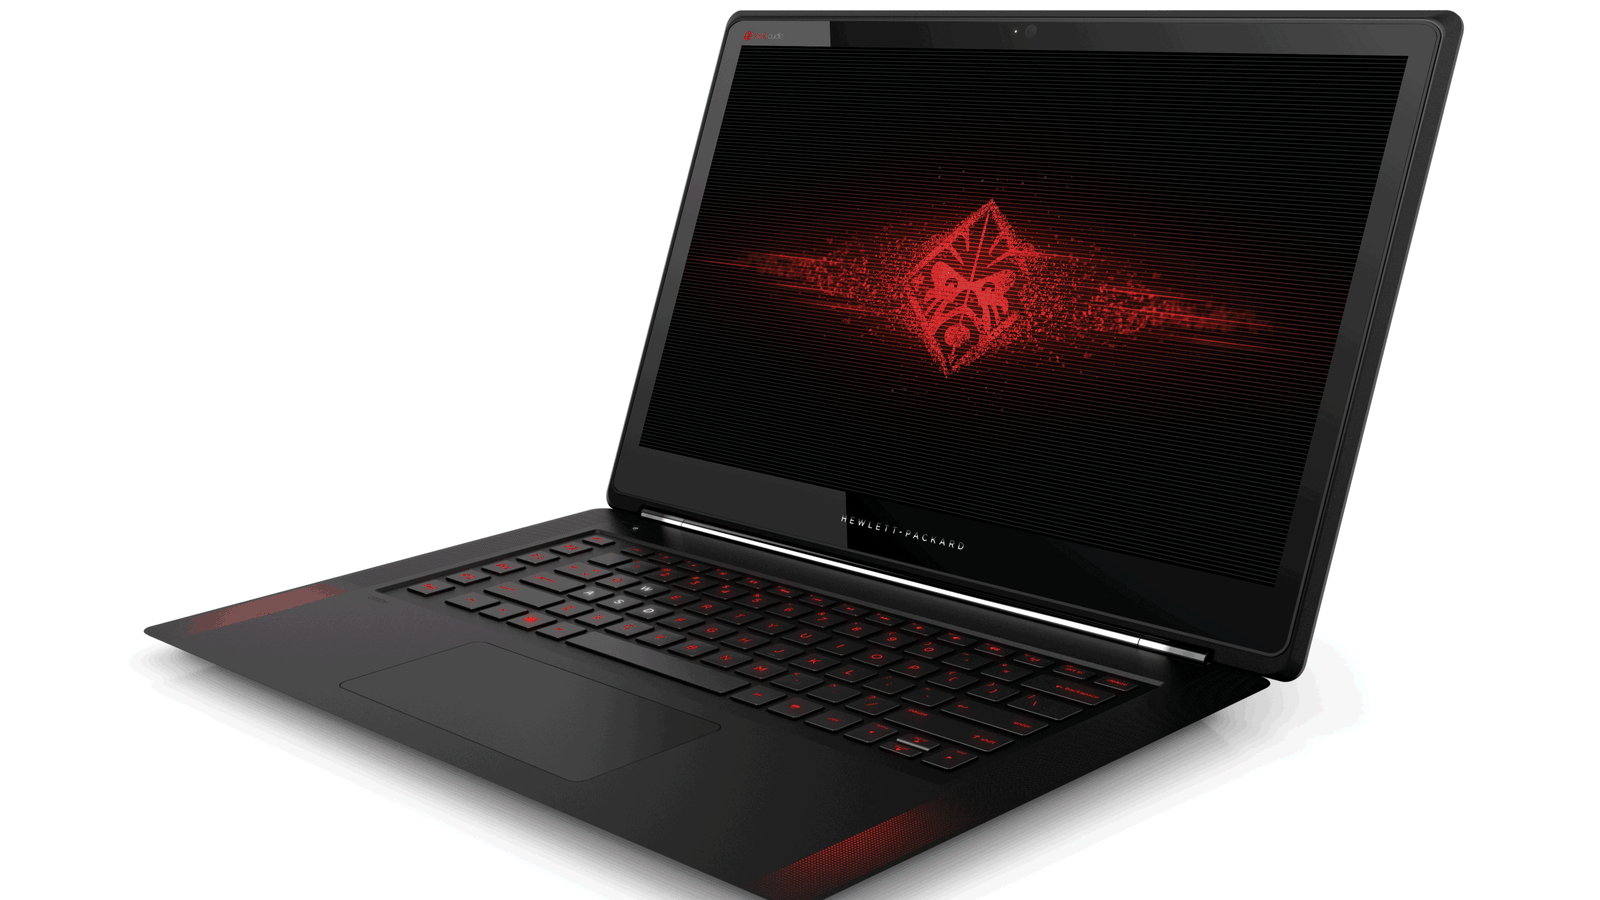 HP Targets The Razer Blade With New Gaming Notebook The